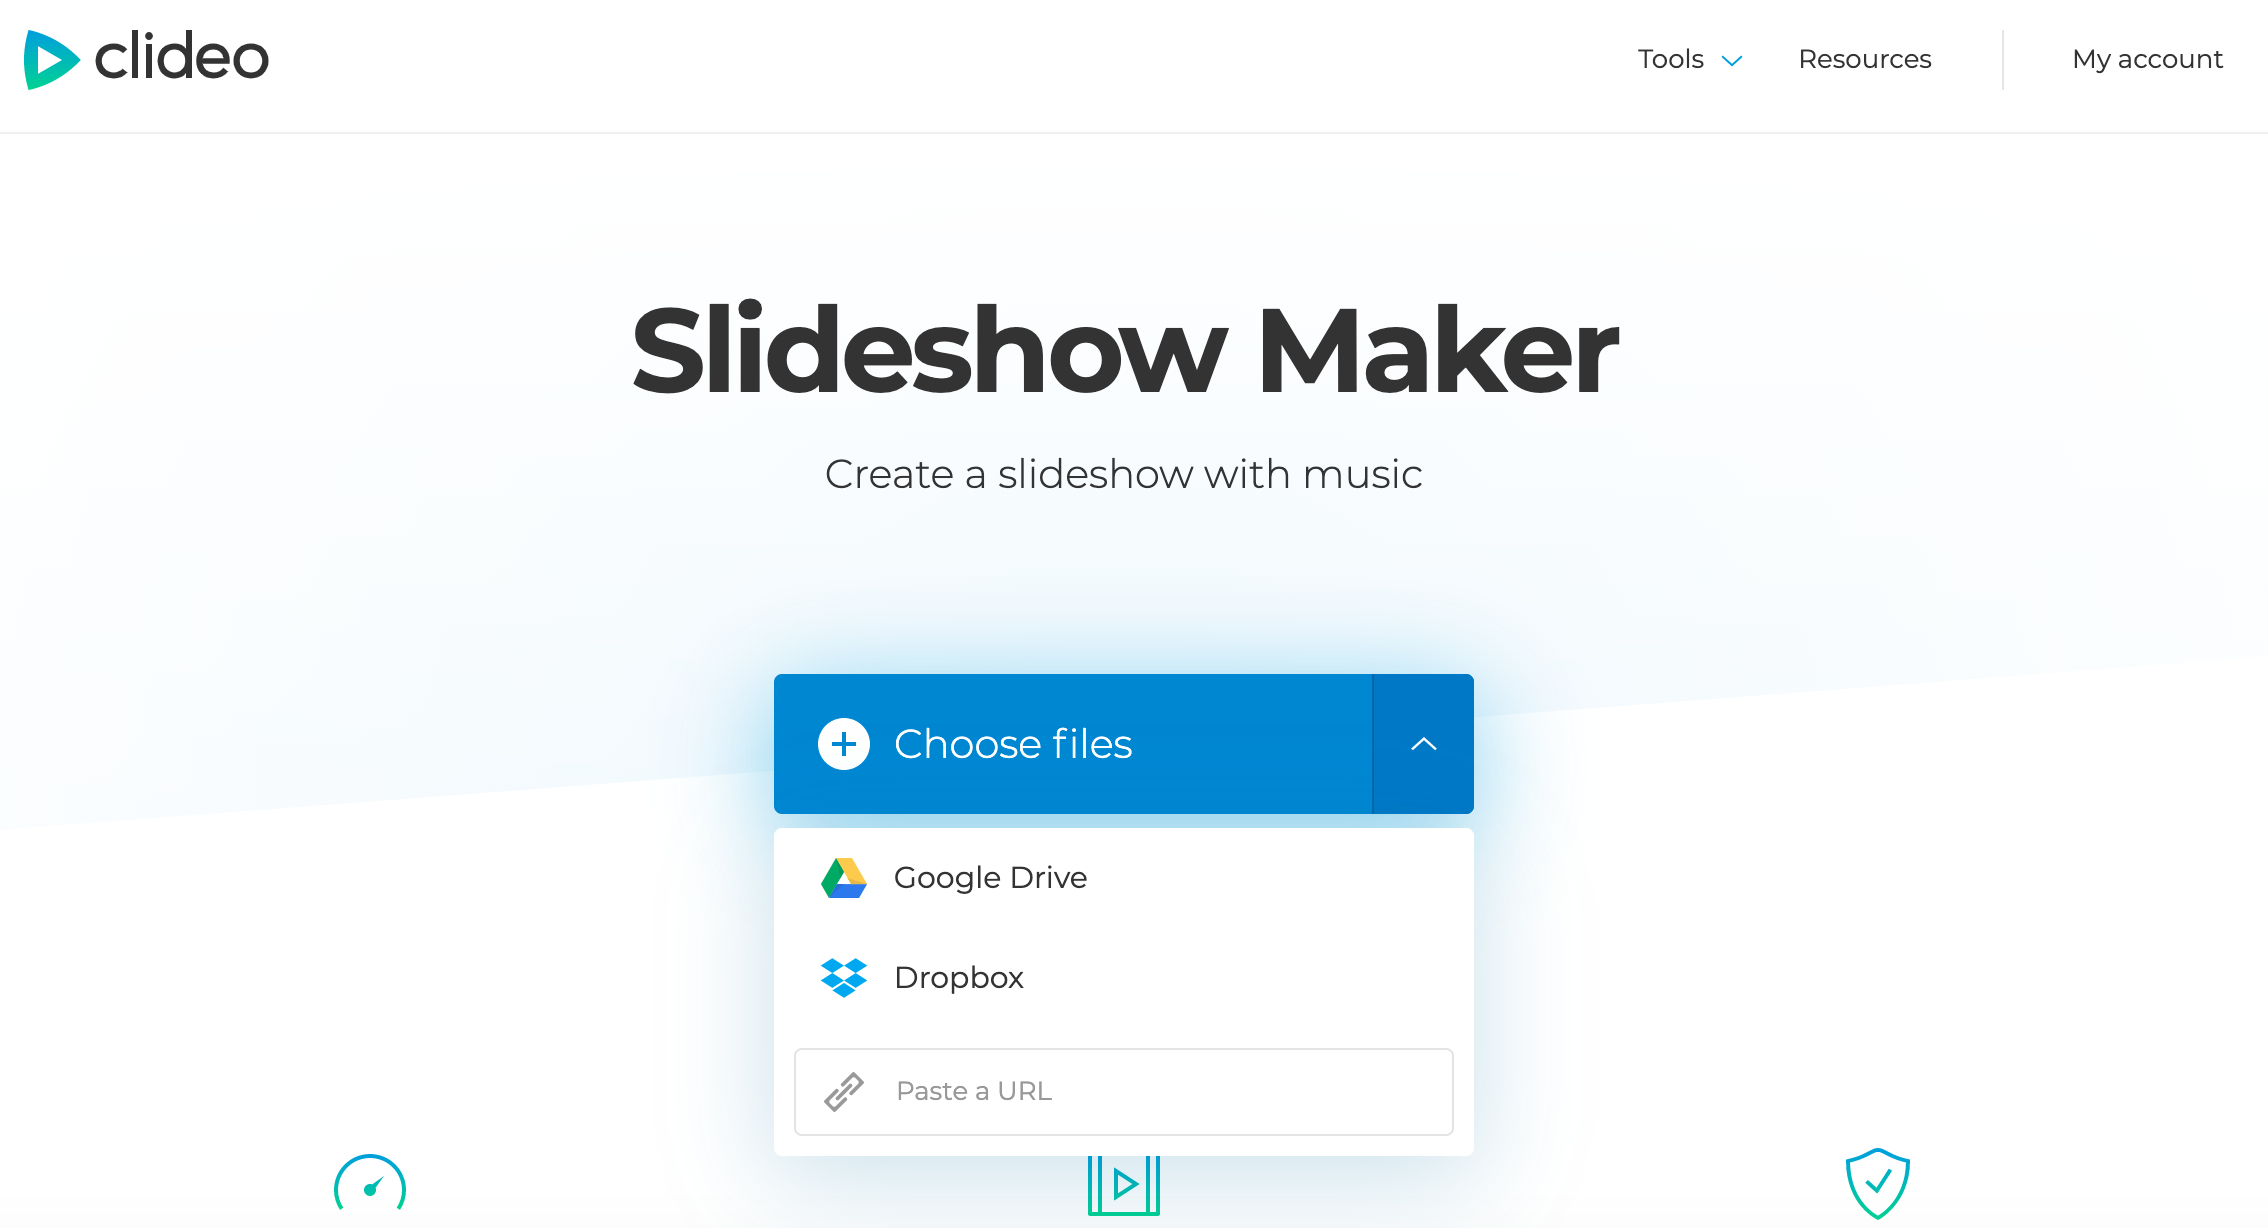 Select the files you need to make a Facebook slideshow